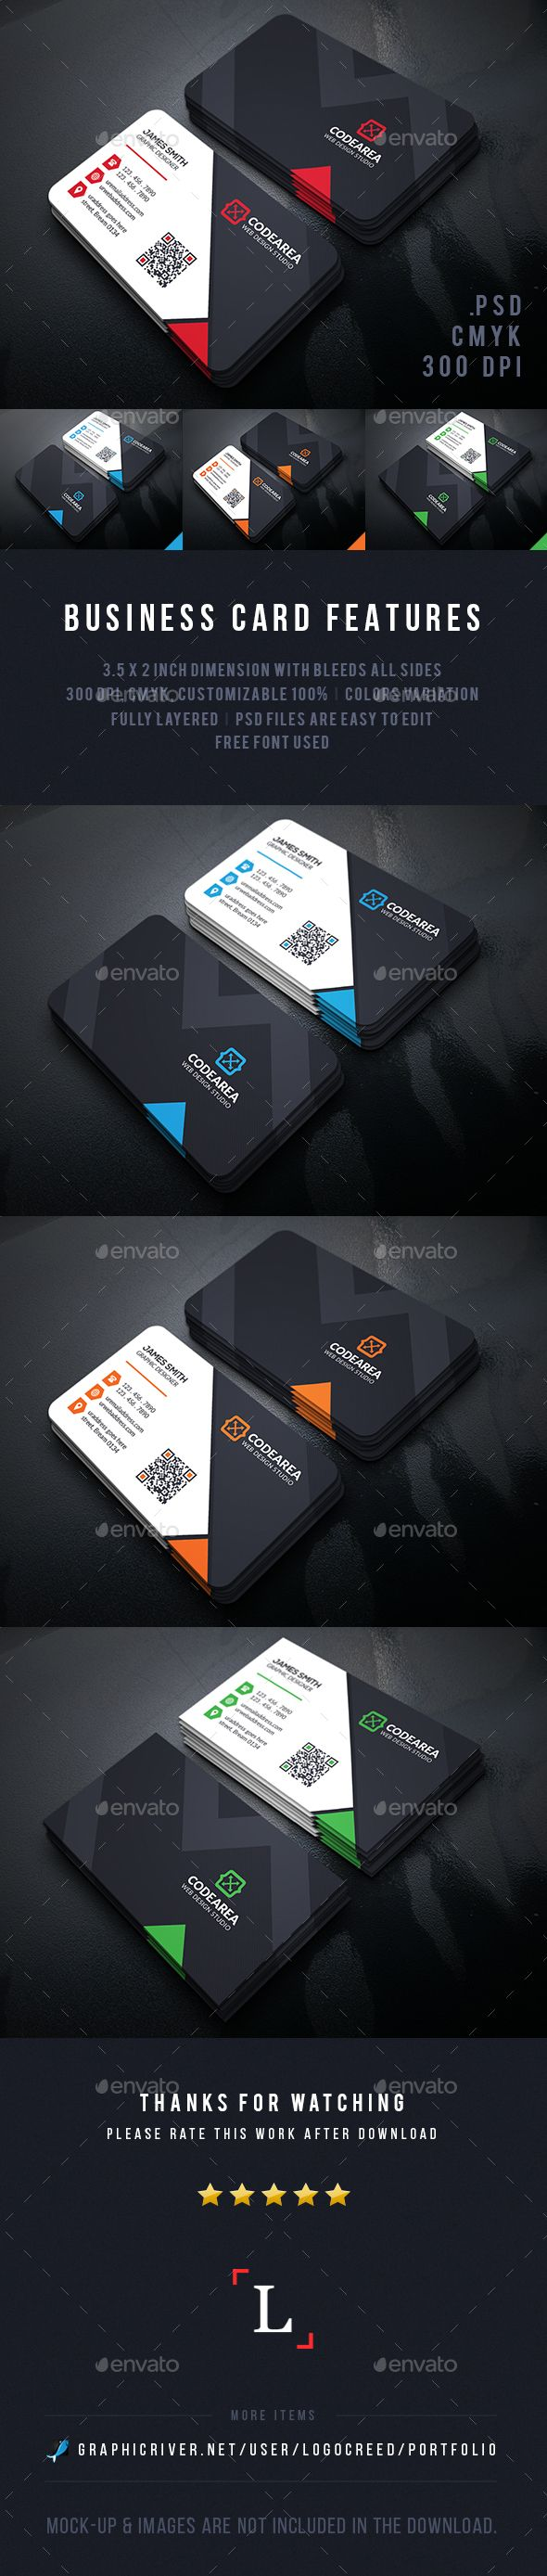 27 Best Modern Business Card Images On Pinterest Modern Business